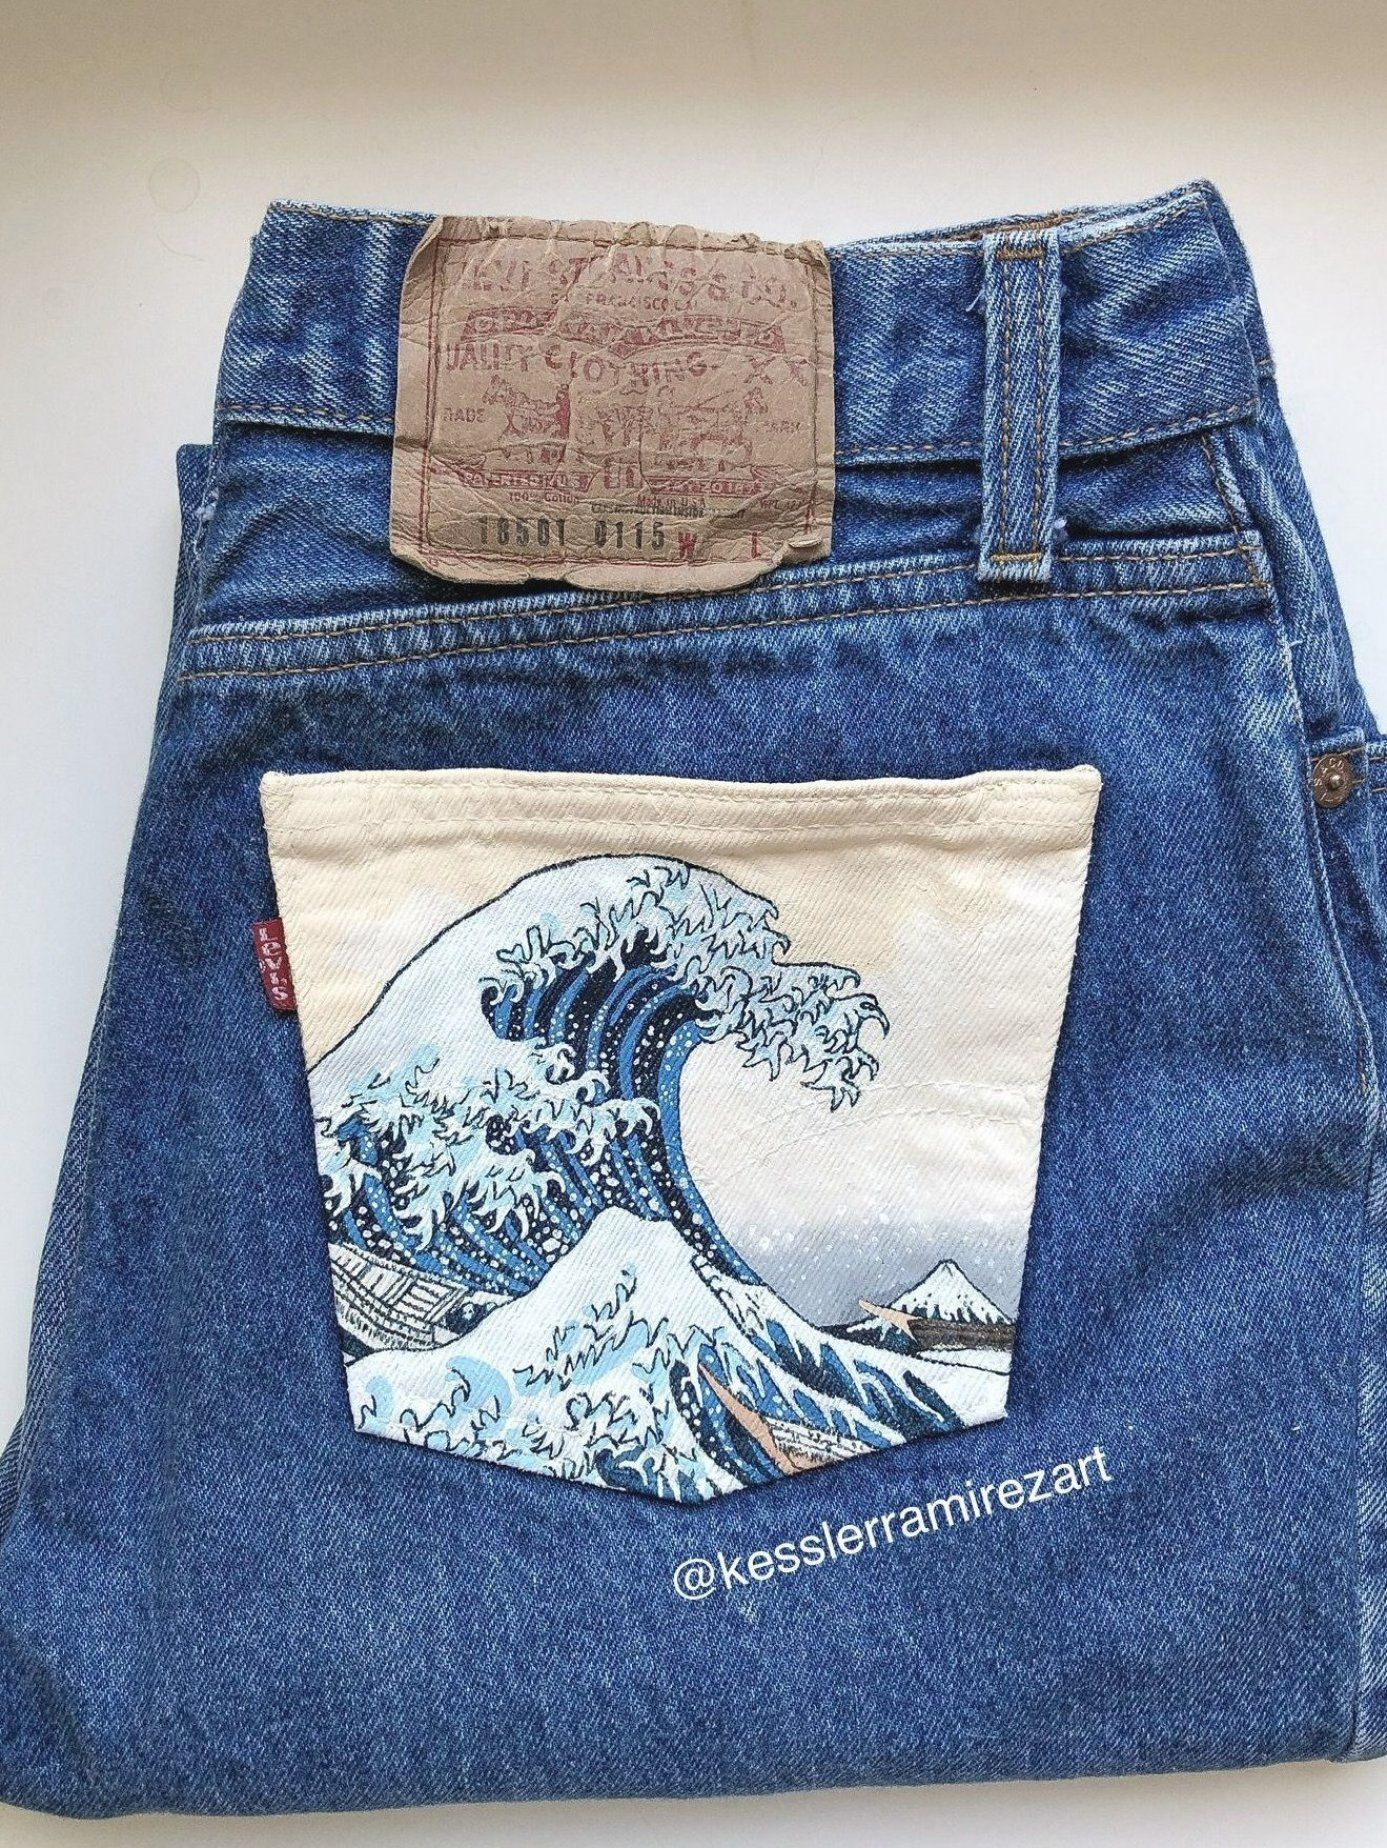 The Great Wave painted jeans by Kessler Ramirez Art- Custom order of The Great Wave Off Kanagawa by Hokusai painted on vintage Levi   s by Kessler   painted jeans  painted denim  painted fabric  denim art  denim painting  pocket painting  jeans pocket  jeans painting Best Picture For  fabric painting sunflower  For Your Taste You are looking for something  and it is going to tell you exactly what you are looking for  and you didn   t find that picture  Here you will find the most beautiful pictu